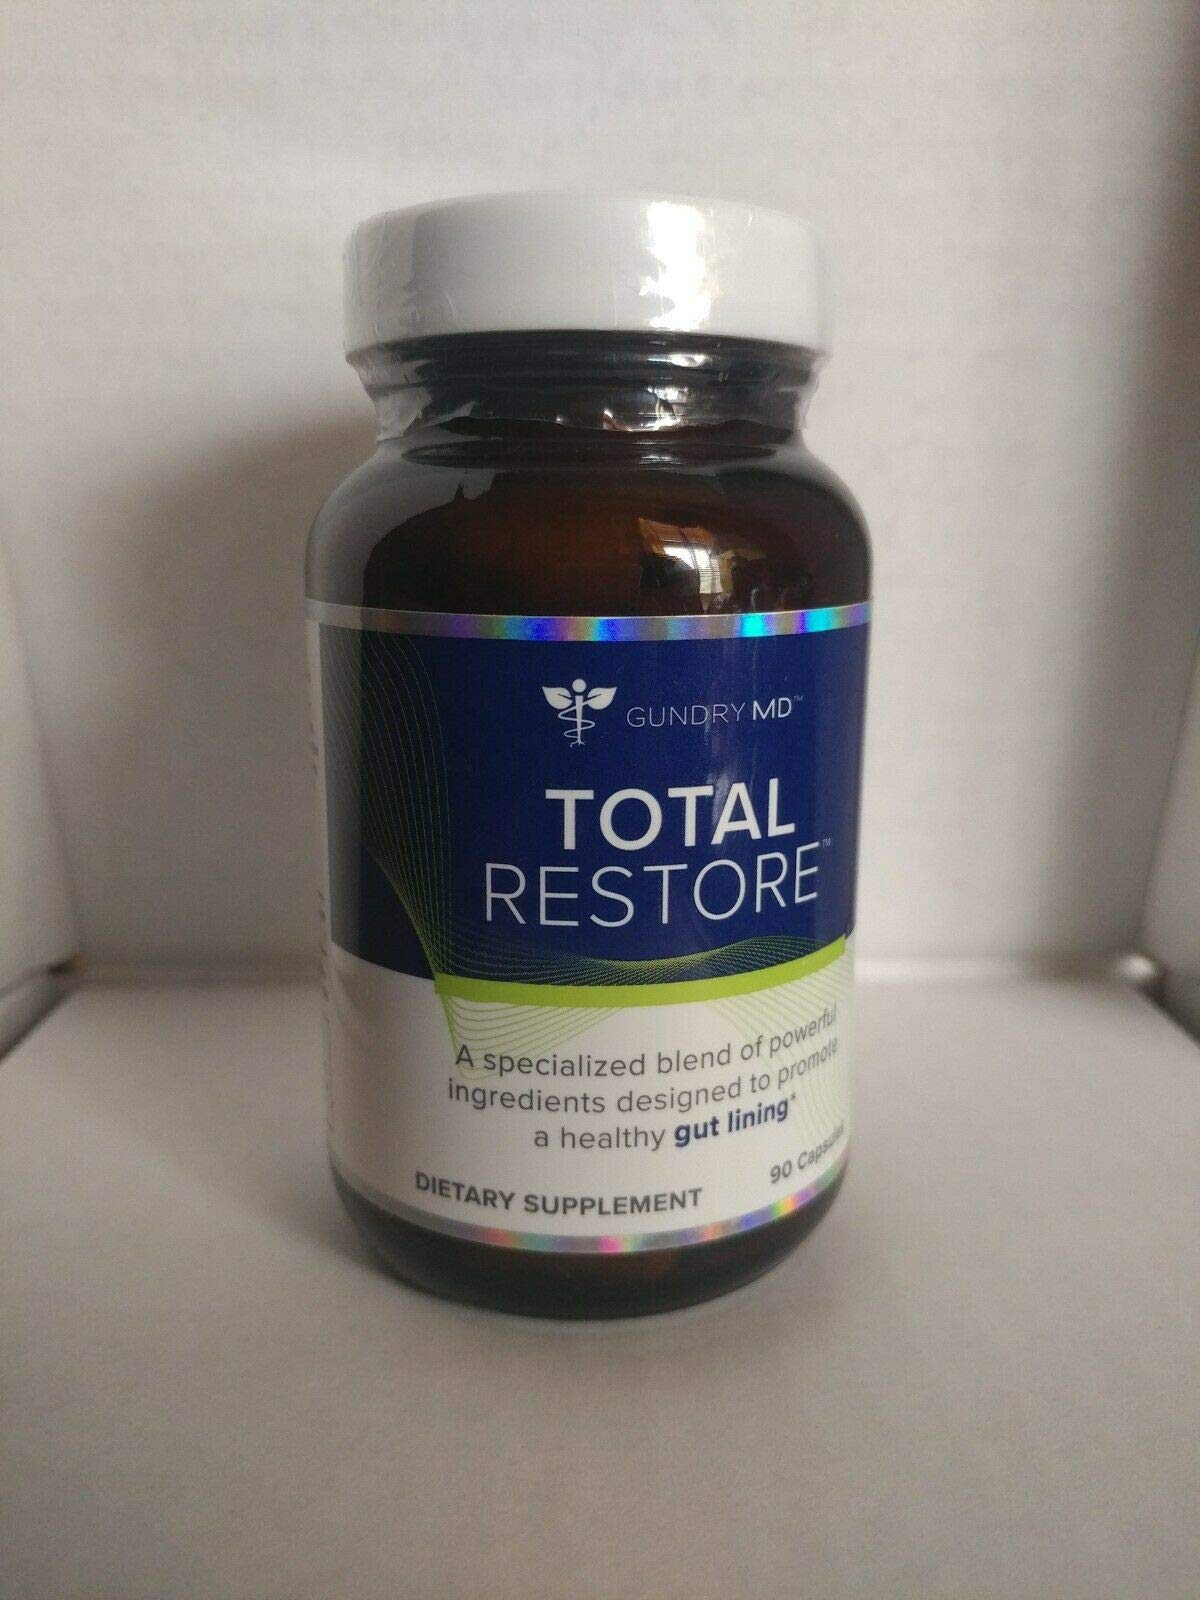 Gundry MD Total Restore Gut Lining Support Blend 90 Capsules by Besmon